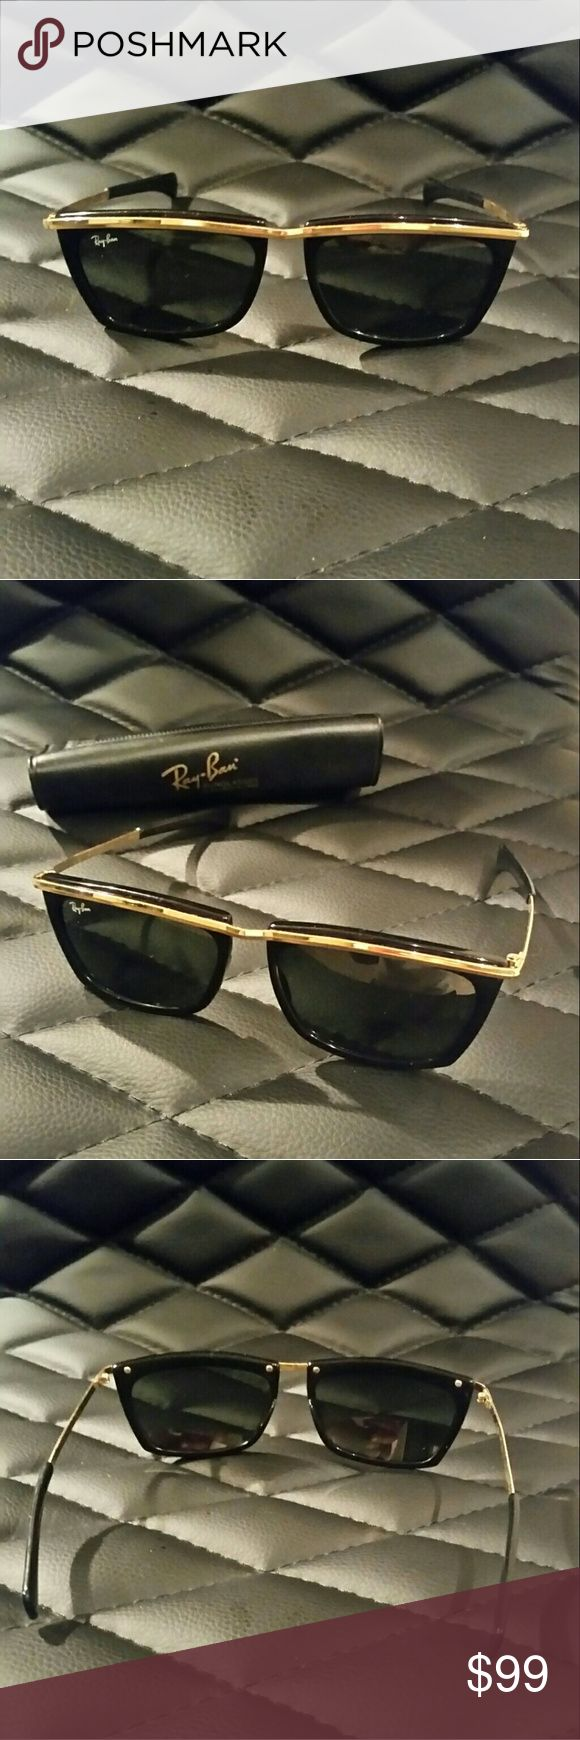 RAY-BAN sunglasses B&L USA Original Ray-Ban Olympian ll sunglasses, black & gold, Bausch & Lomb L1004 vintage, mint condition, authentic. Accessories Glasses